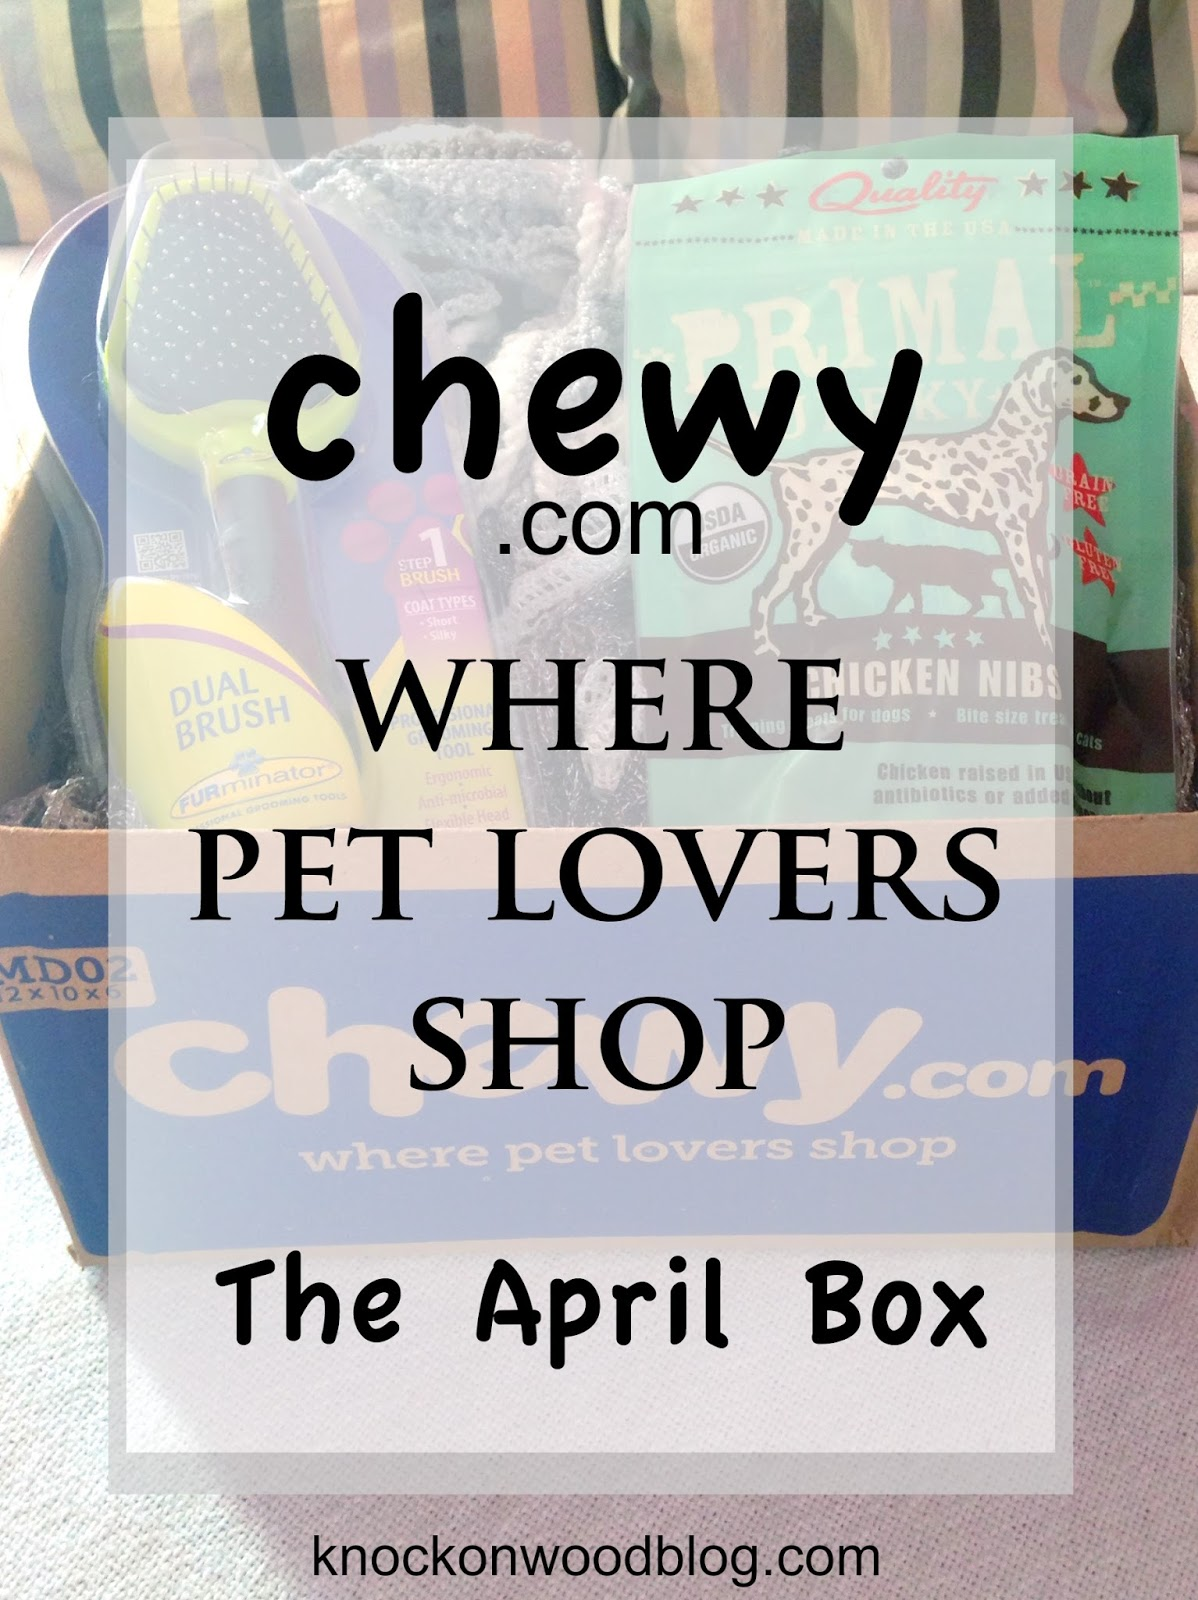 Chewy dog and cat treats